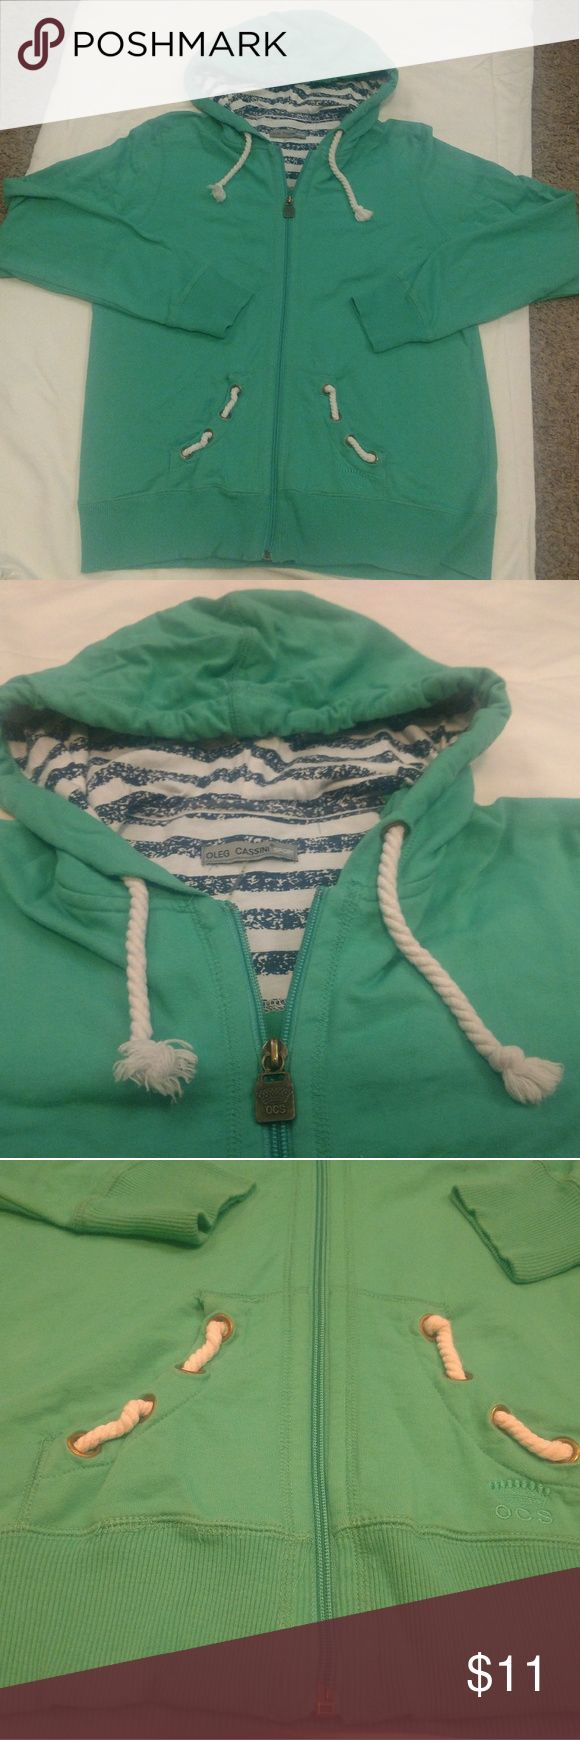 Women's green zip up hoodie Oleg Cassini sport Nice hoodie! Zips up front with cute rope ties. Soft green with white & navy striped inside some parts/ accent print. Smoke and pet free home. Oleg Cassini Sport Tops Sweatshirts & Hoodies